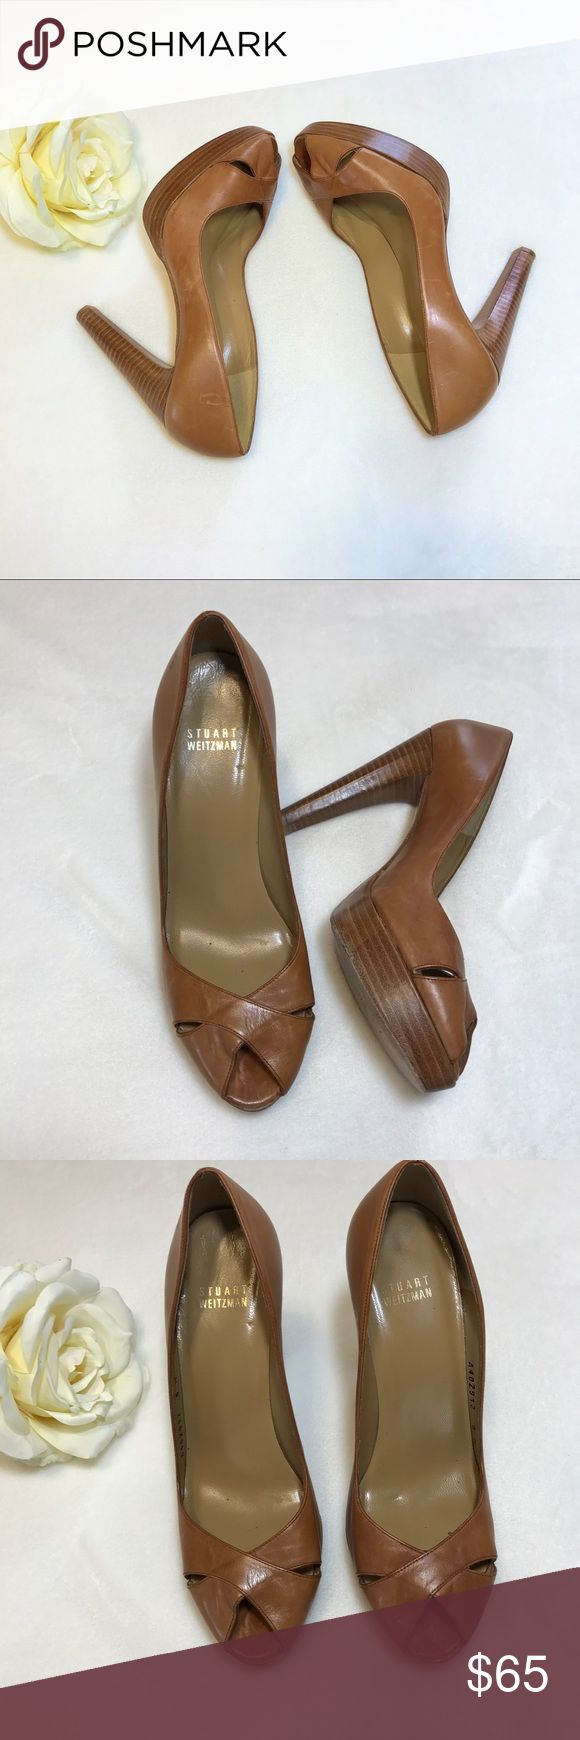 """Stuart Weitzman Brown Leather Peep Toe Heel Sandal Gorgeous pair of leather high heel sandals with peep toe opening. High arch and padded insole. Leather upper and sole.   Size 8 M  Heel Height 4.75"""", with 1"""" platform around toe  Condition Excellent condition preowned. Small marks here and there. No flaws noted. Stuart Weitzman Shoes Heels"""